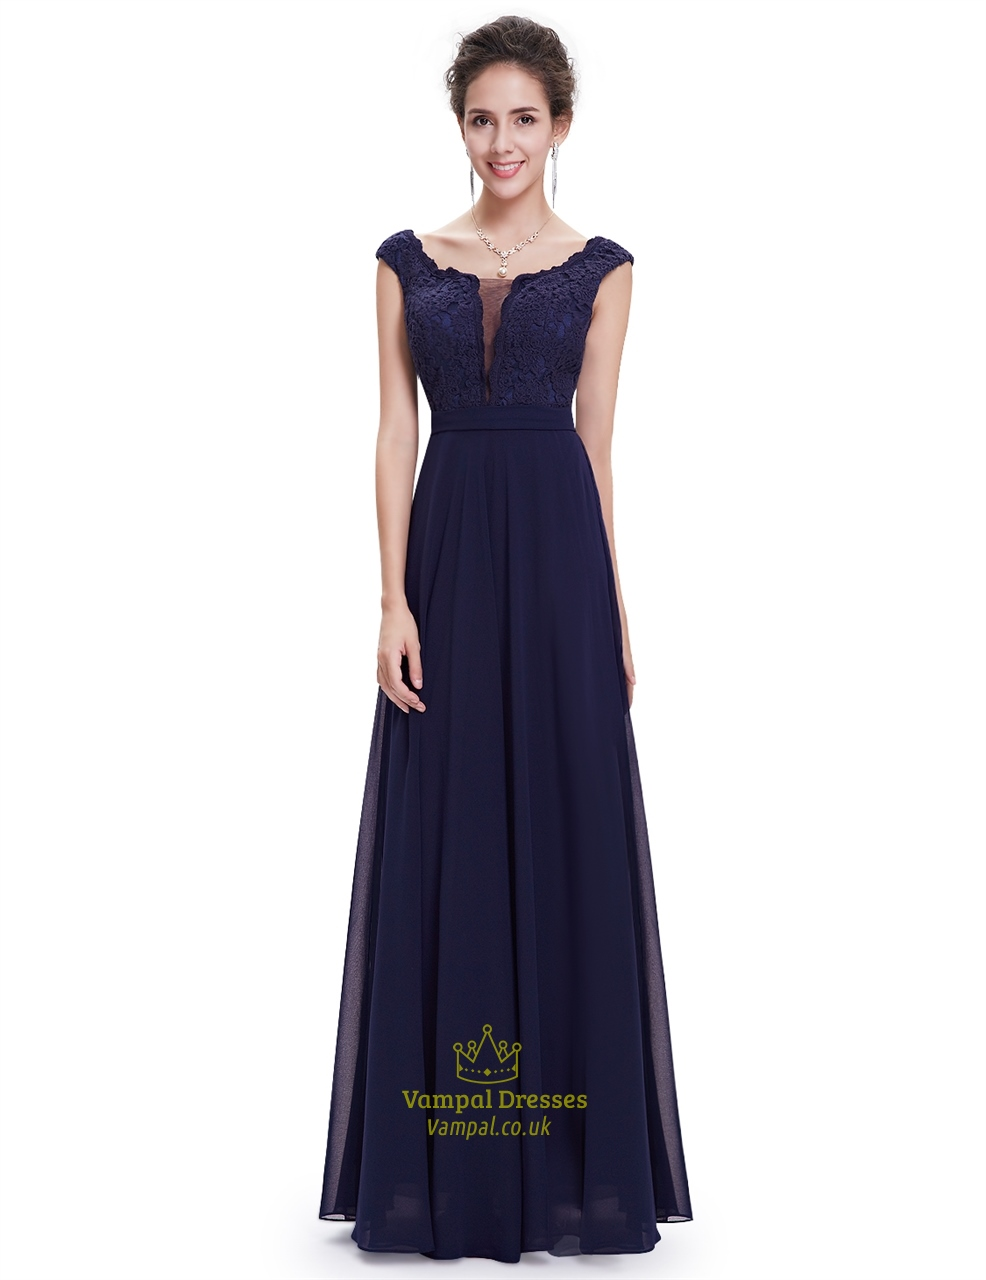 Snazzy Lace Long Bridesmaid Dresses Long Sleeves Long Bridesmaid Dresses Dusty Rose Lace Bodice Navy Blue Chiffon Cap Sleeves Long Bridesmaid Dresses Navy Blue Chiffon Cap Sleeves Long Bridesmaid Dres wedding dress Long Bridesmaid Dresses